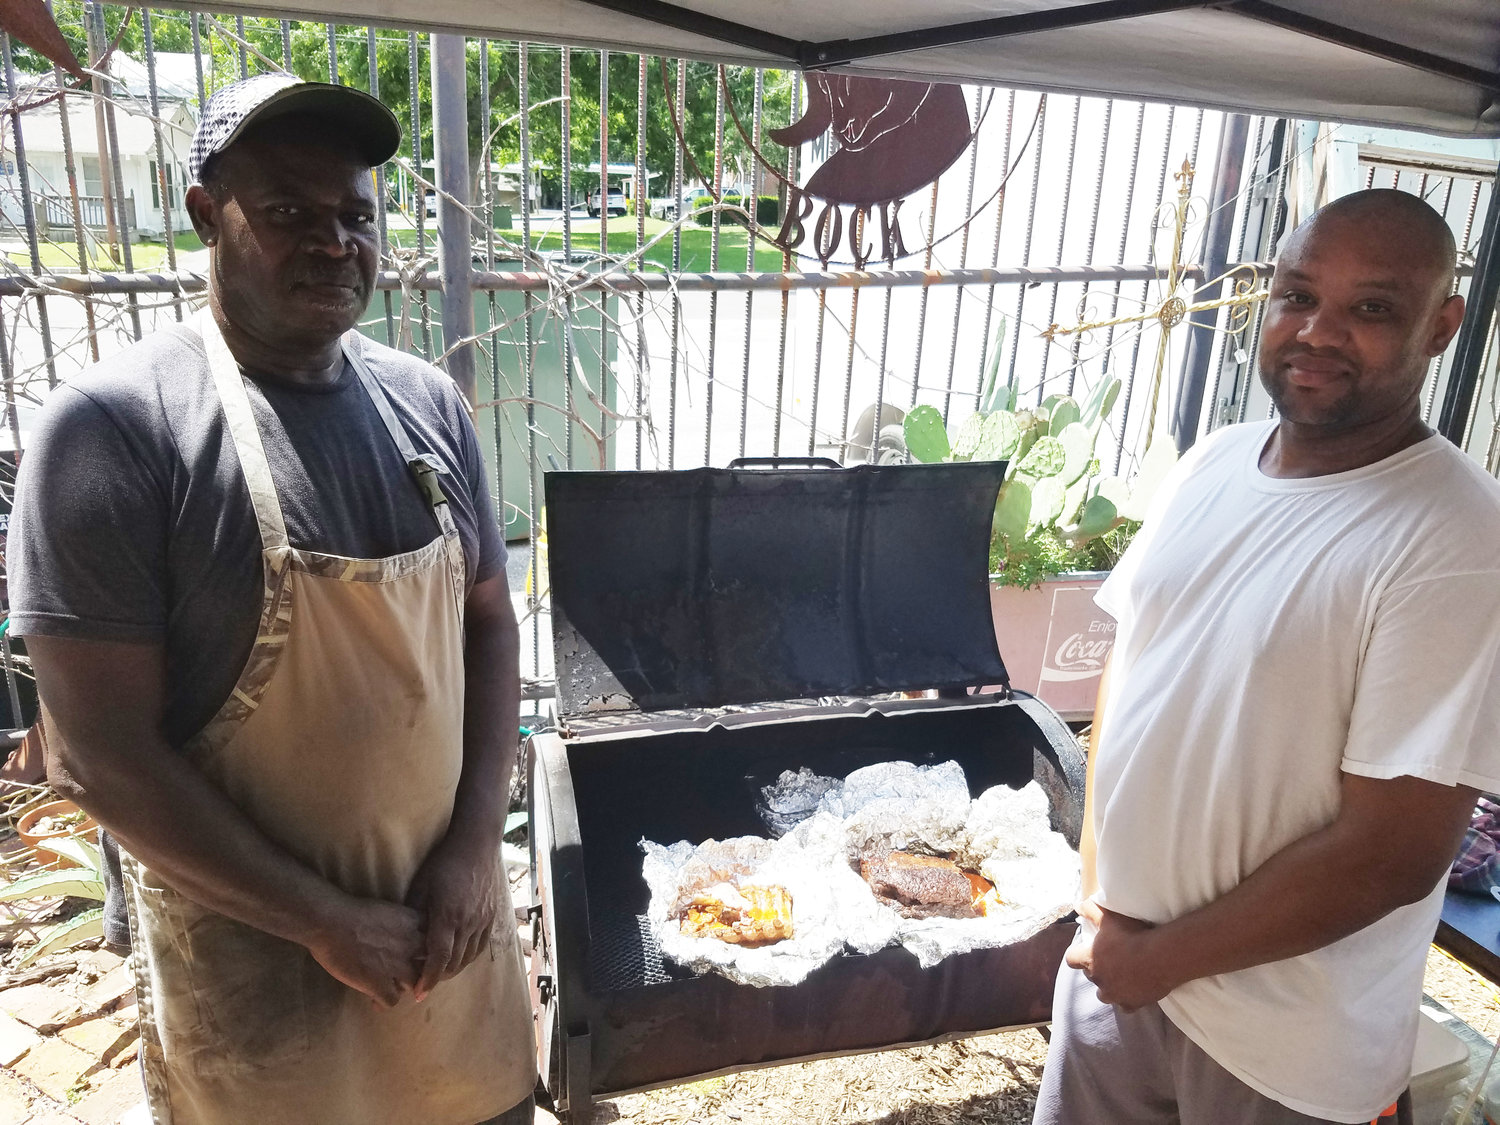 A&A Barbecue is an every-other-week fixture on the back patio of Antiques, Art and Beer. The duo of Alvin Brown and his son-in-law Anton Dews sets up shop every other Saturday serving their special barbecue.